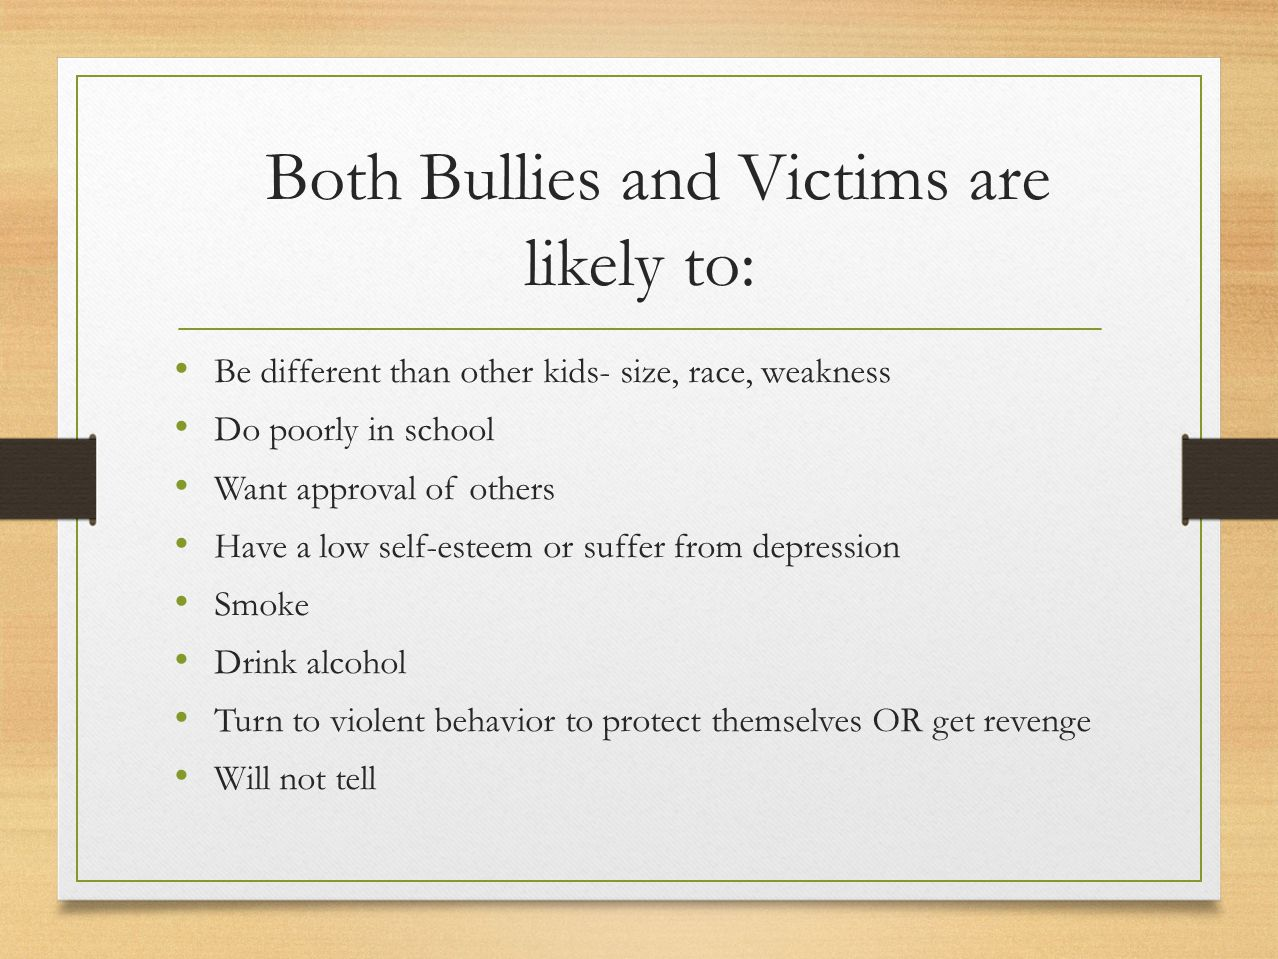 Both Bullies and Victims are likely to: Be different than other kids- size, race, weakness Do poorly in school Want approval of others Have a low self